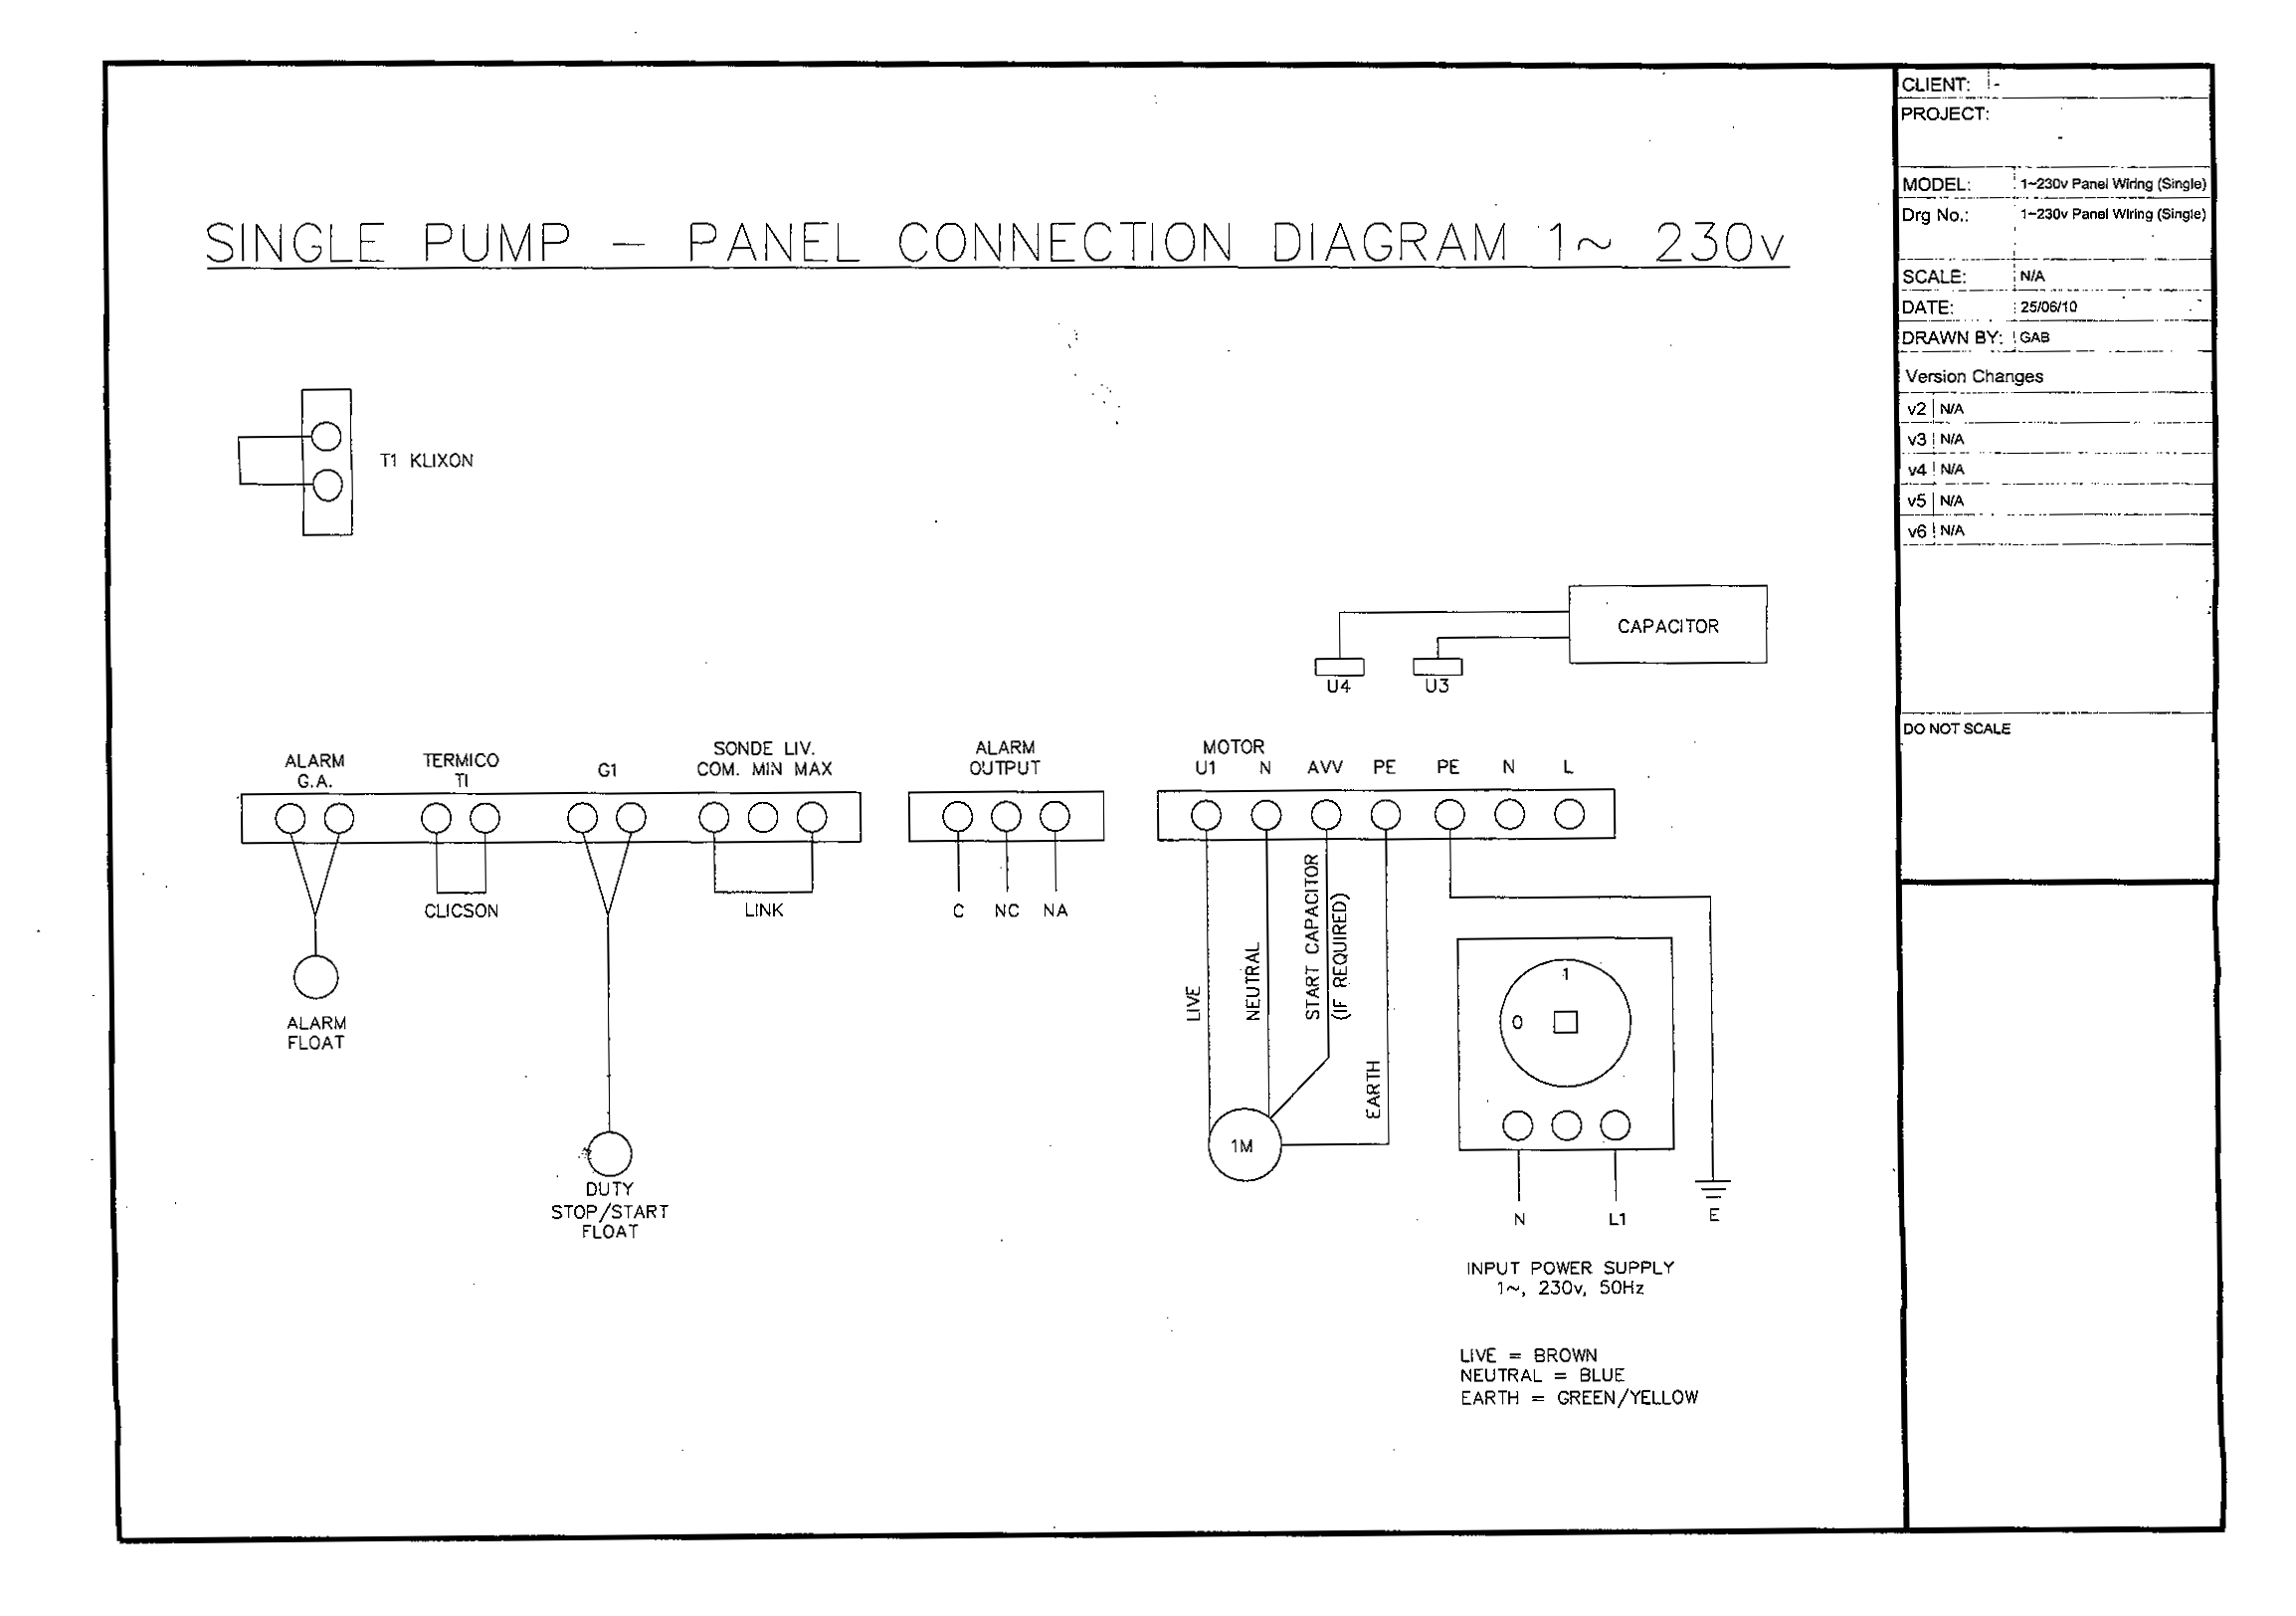 Orenco Systems Wiring Diagram besides Residential Septic Lift Station Wiring besides Gas Pack Wiring Diagram Carrier Model 48tjd008 511ga together with Duplex Wiring Diagram moreover Pump Control Panel Wiring Diagram. on orenco duplex control panel wiring diagram